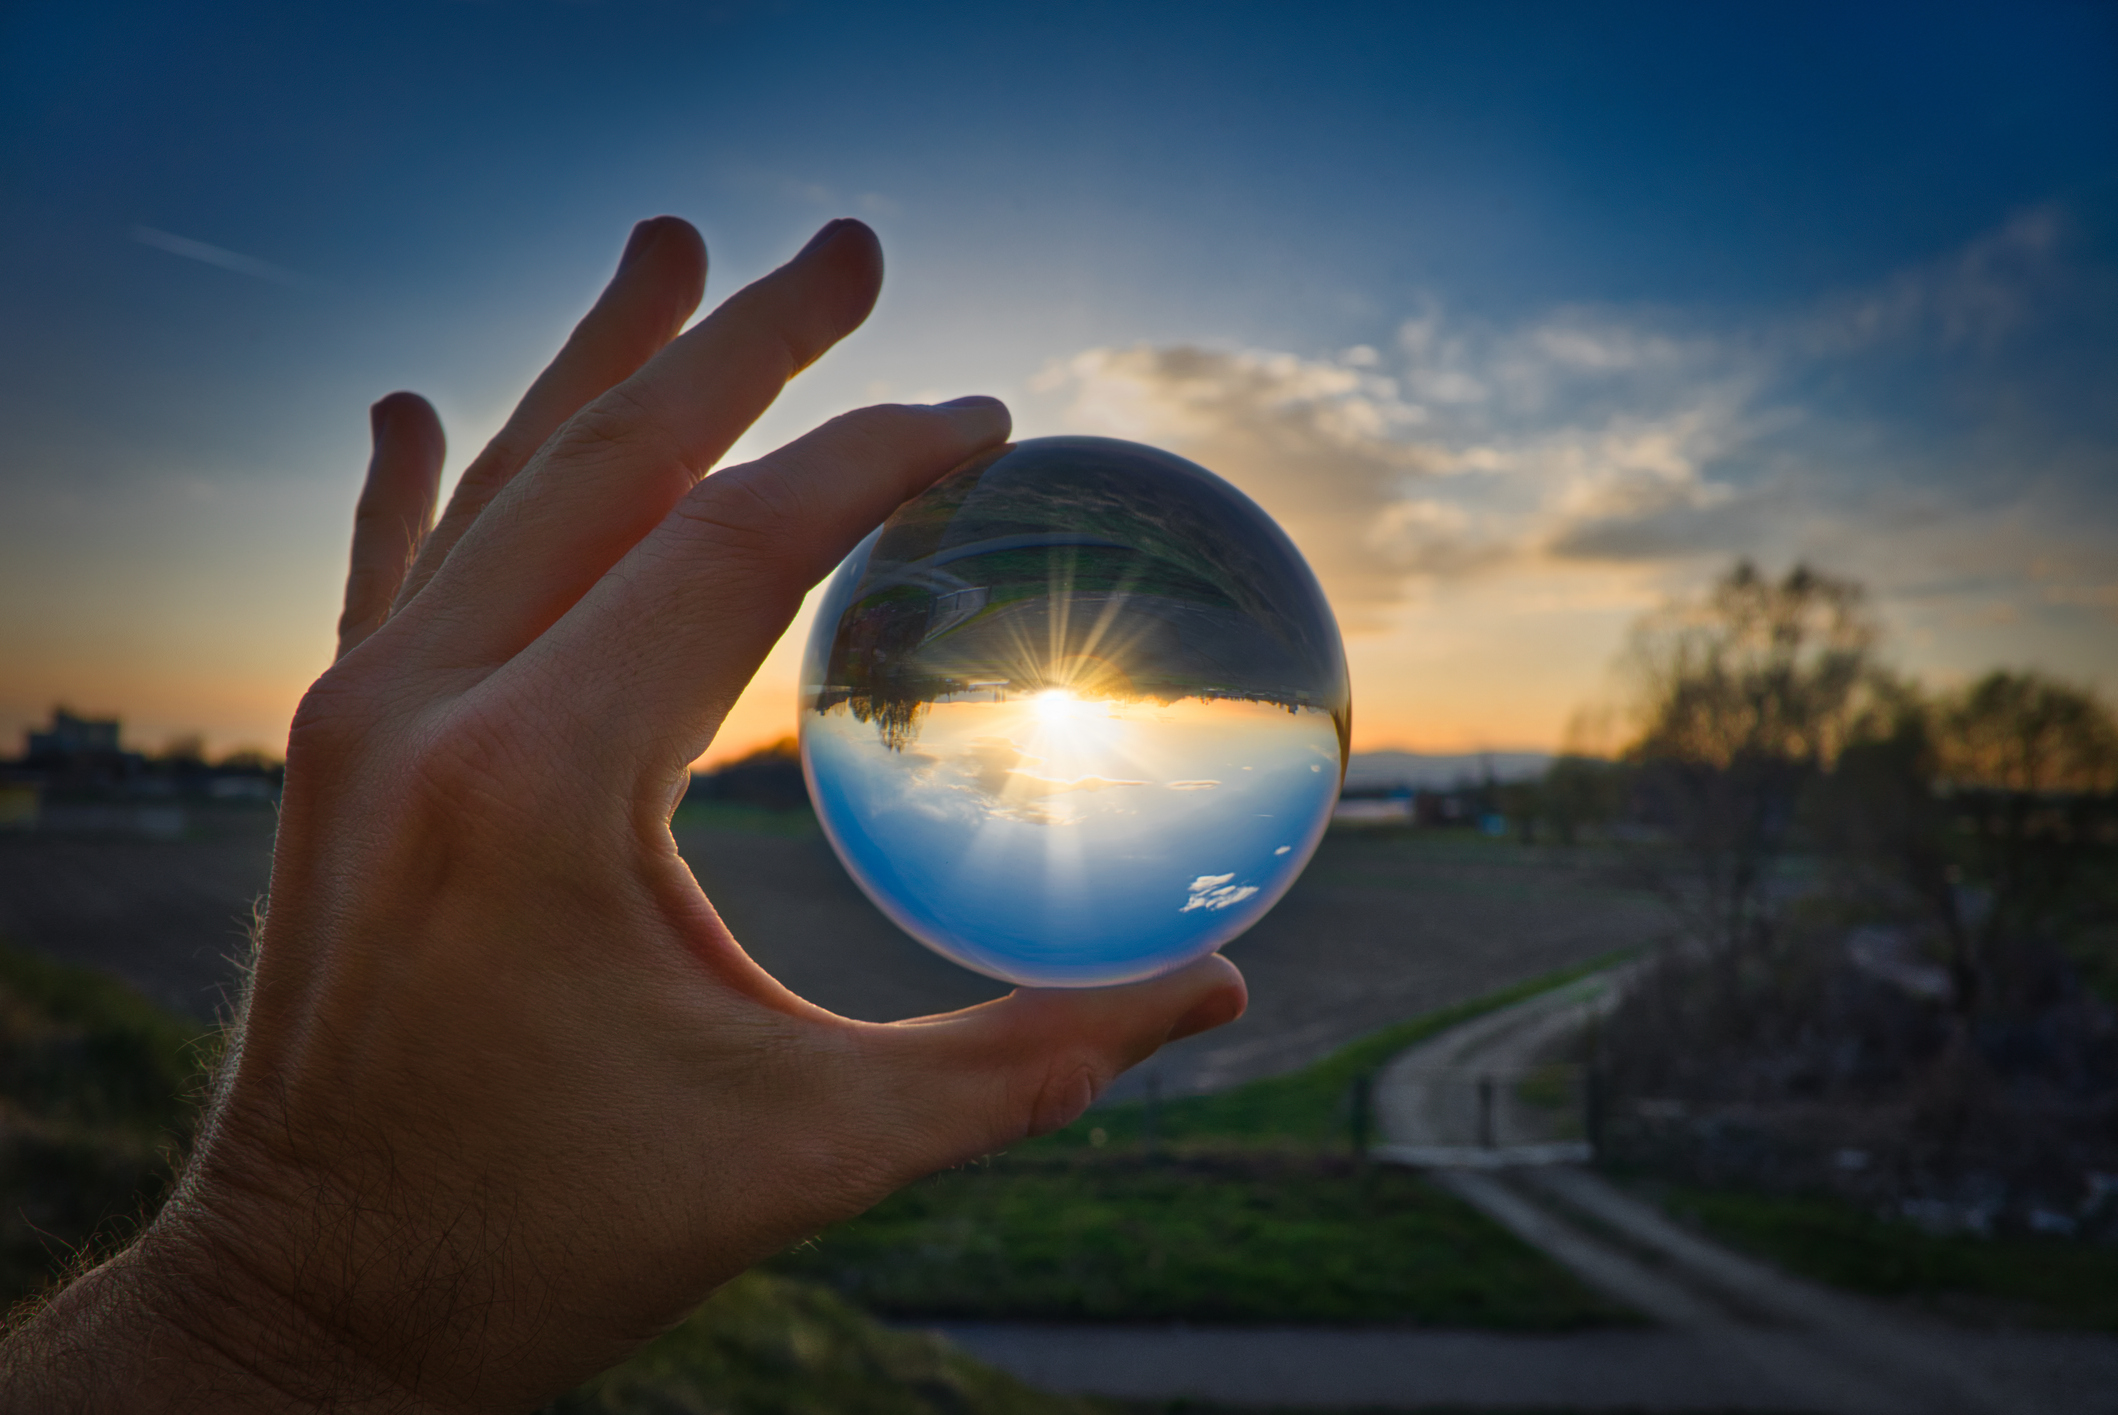 A hand holding a crystal ball looking into horizon at sunset.